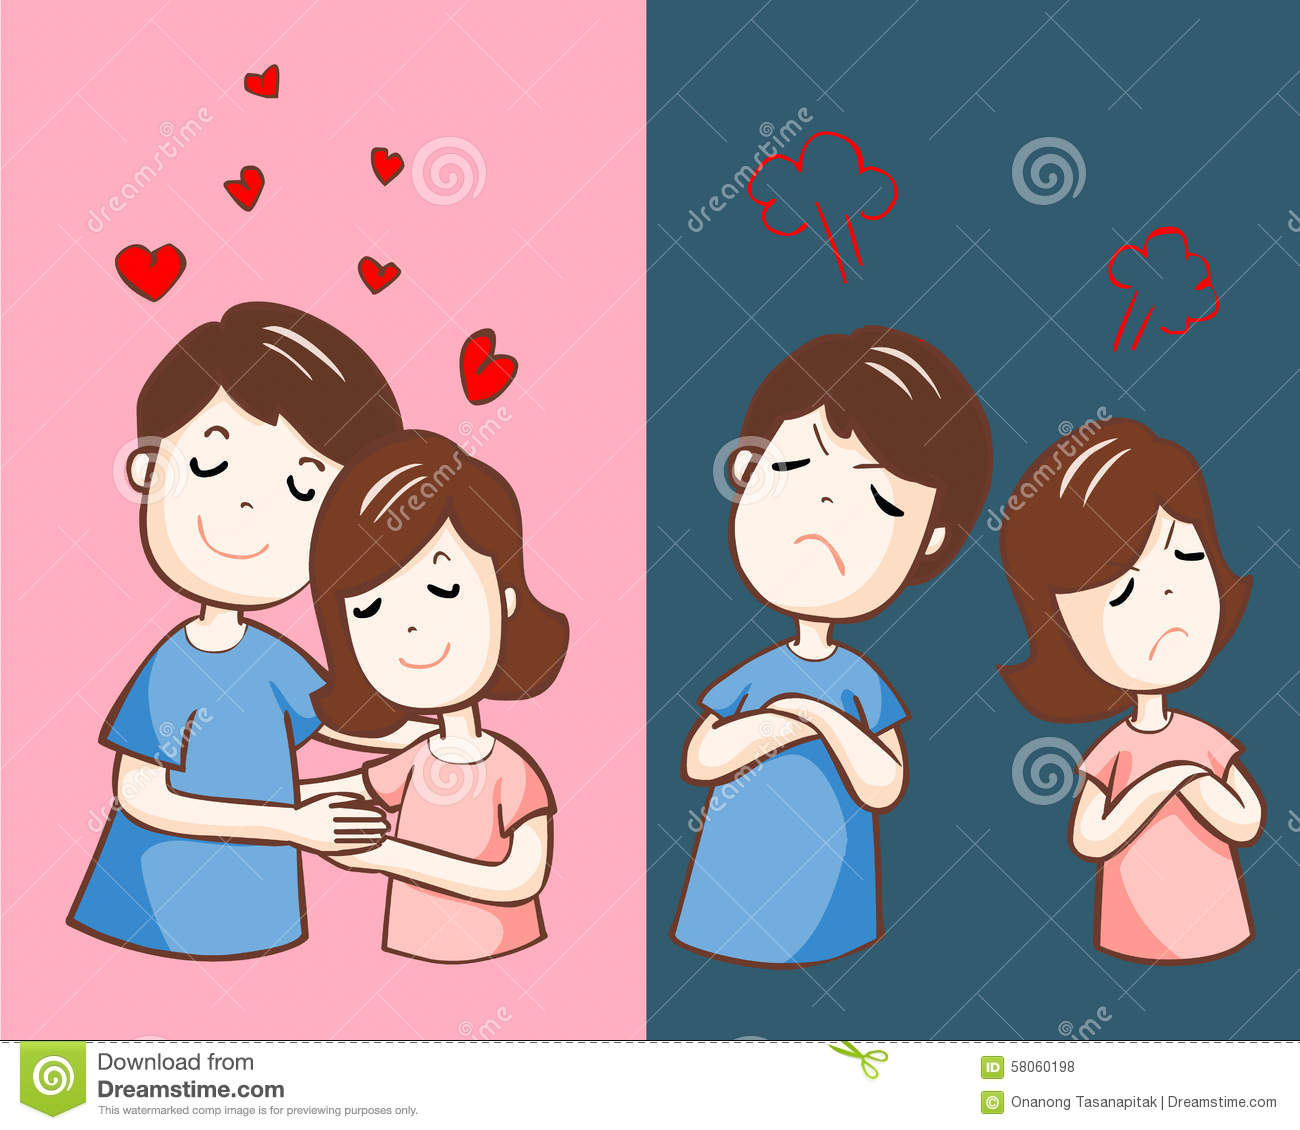 People Hugging Each Other Clipart - Clipart Kid